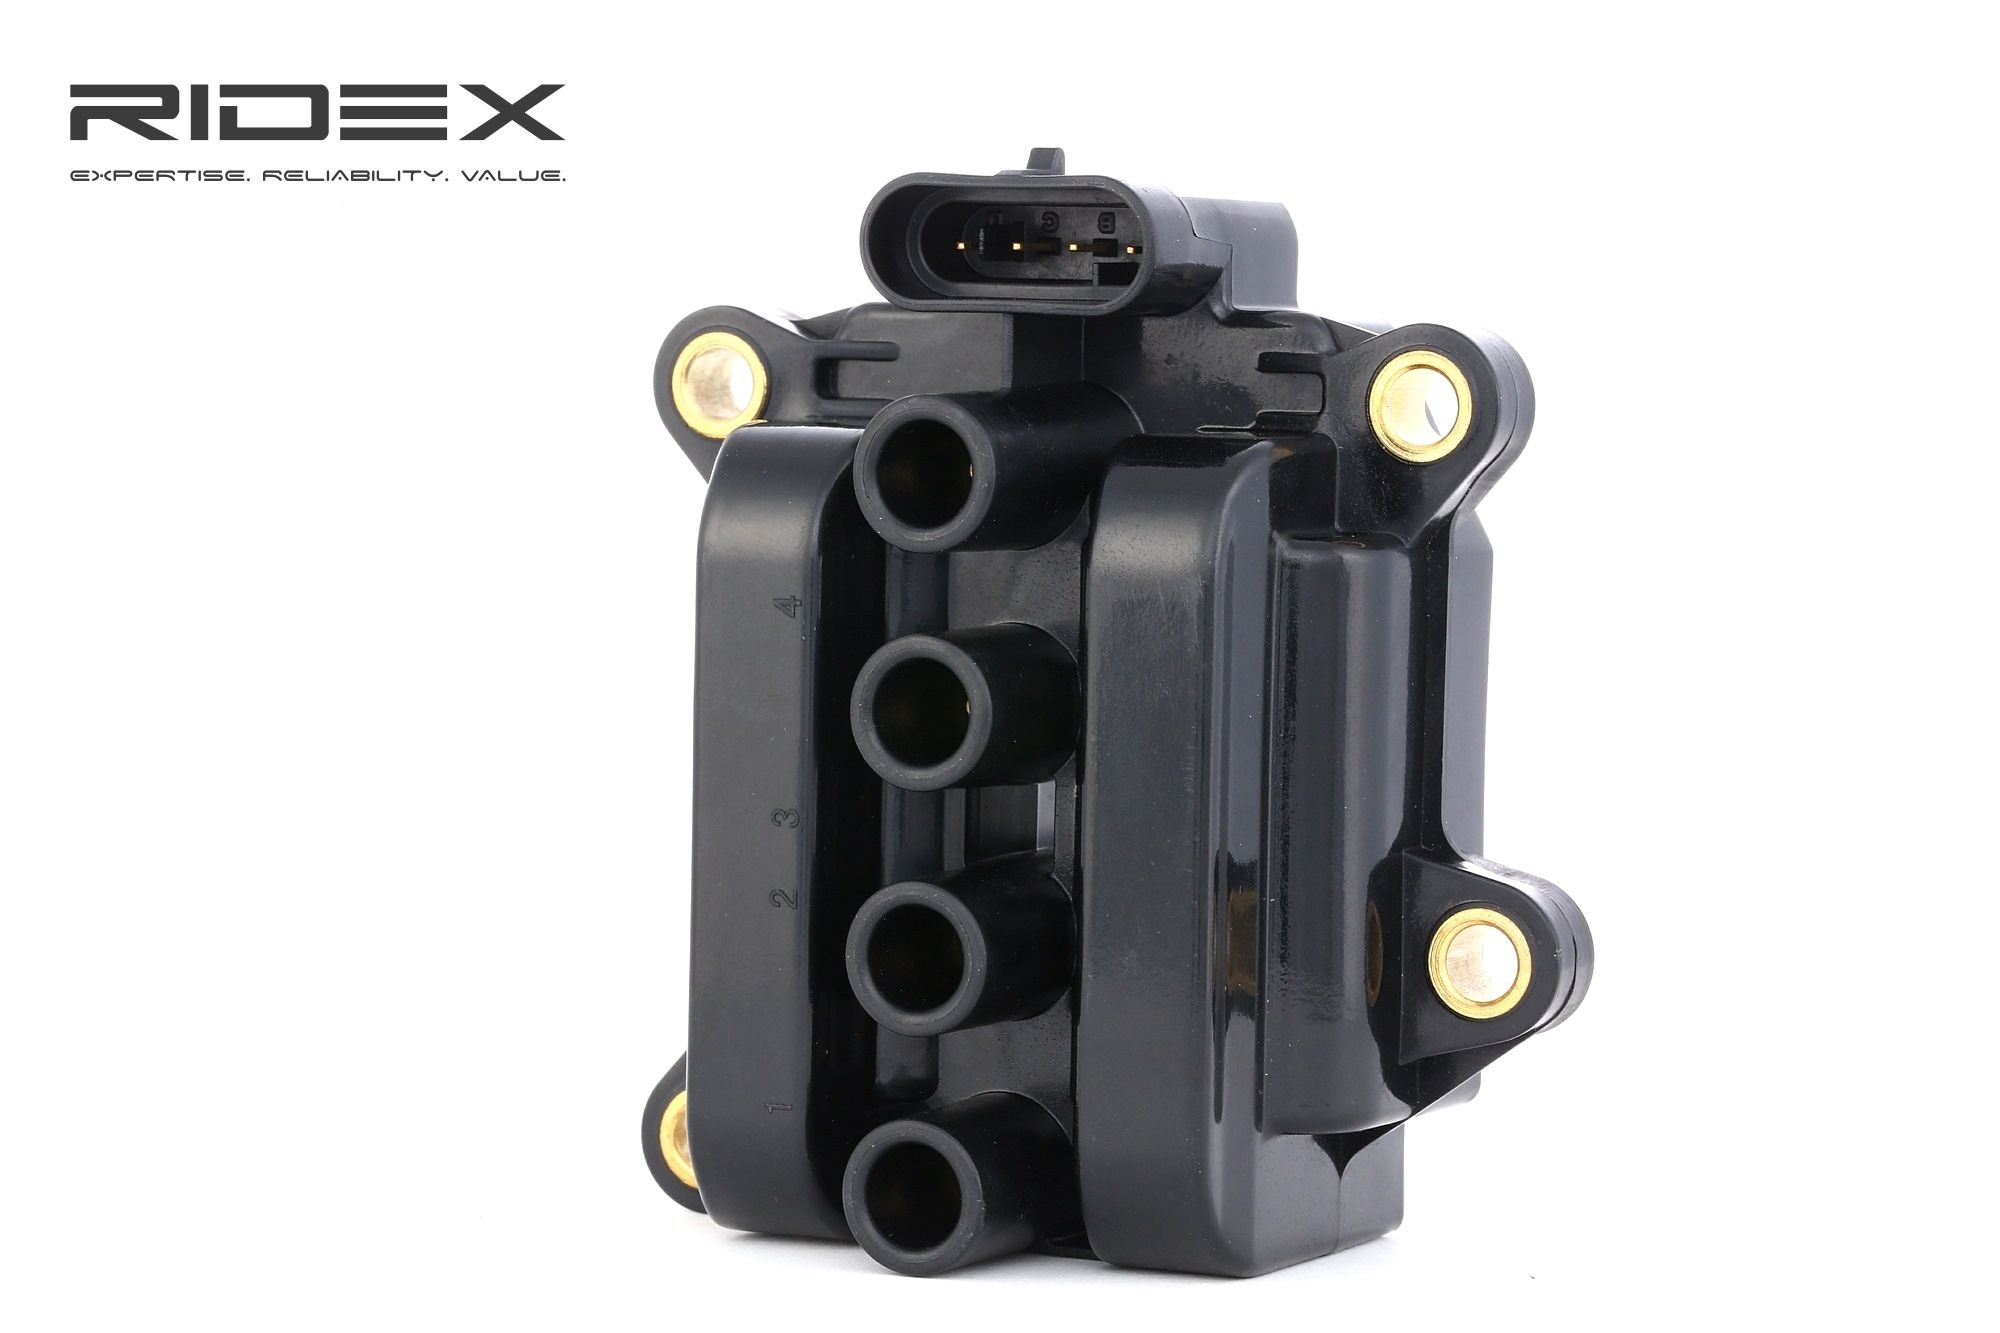 Ignition Coil RIDEX 689C0284 rating